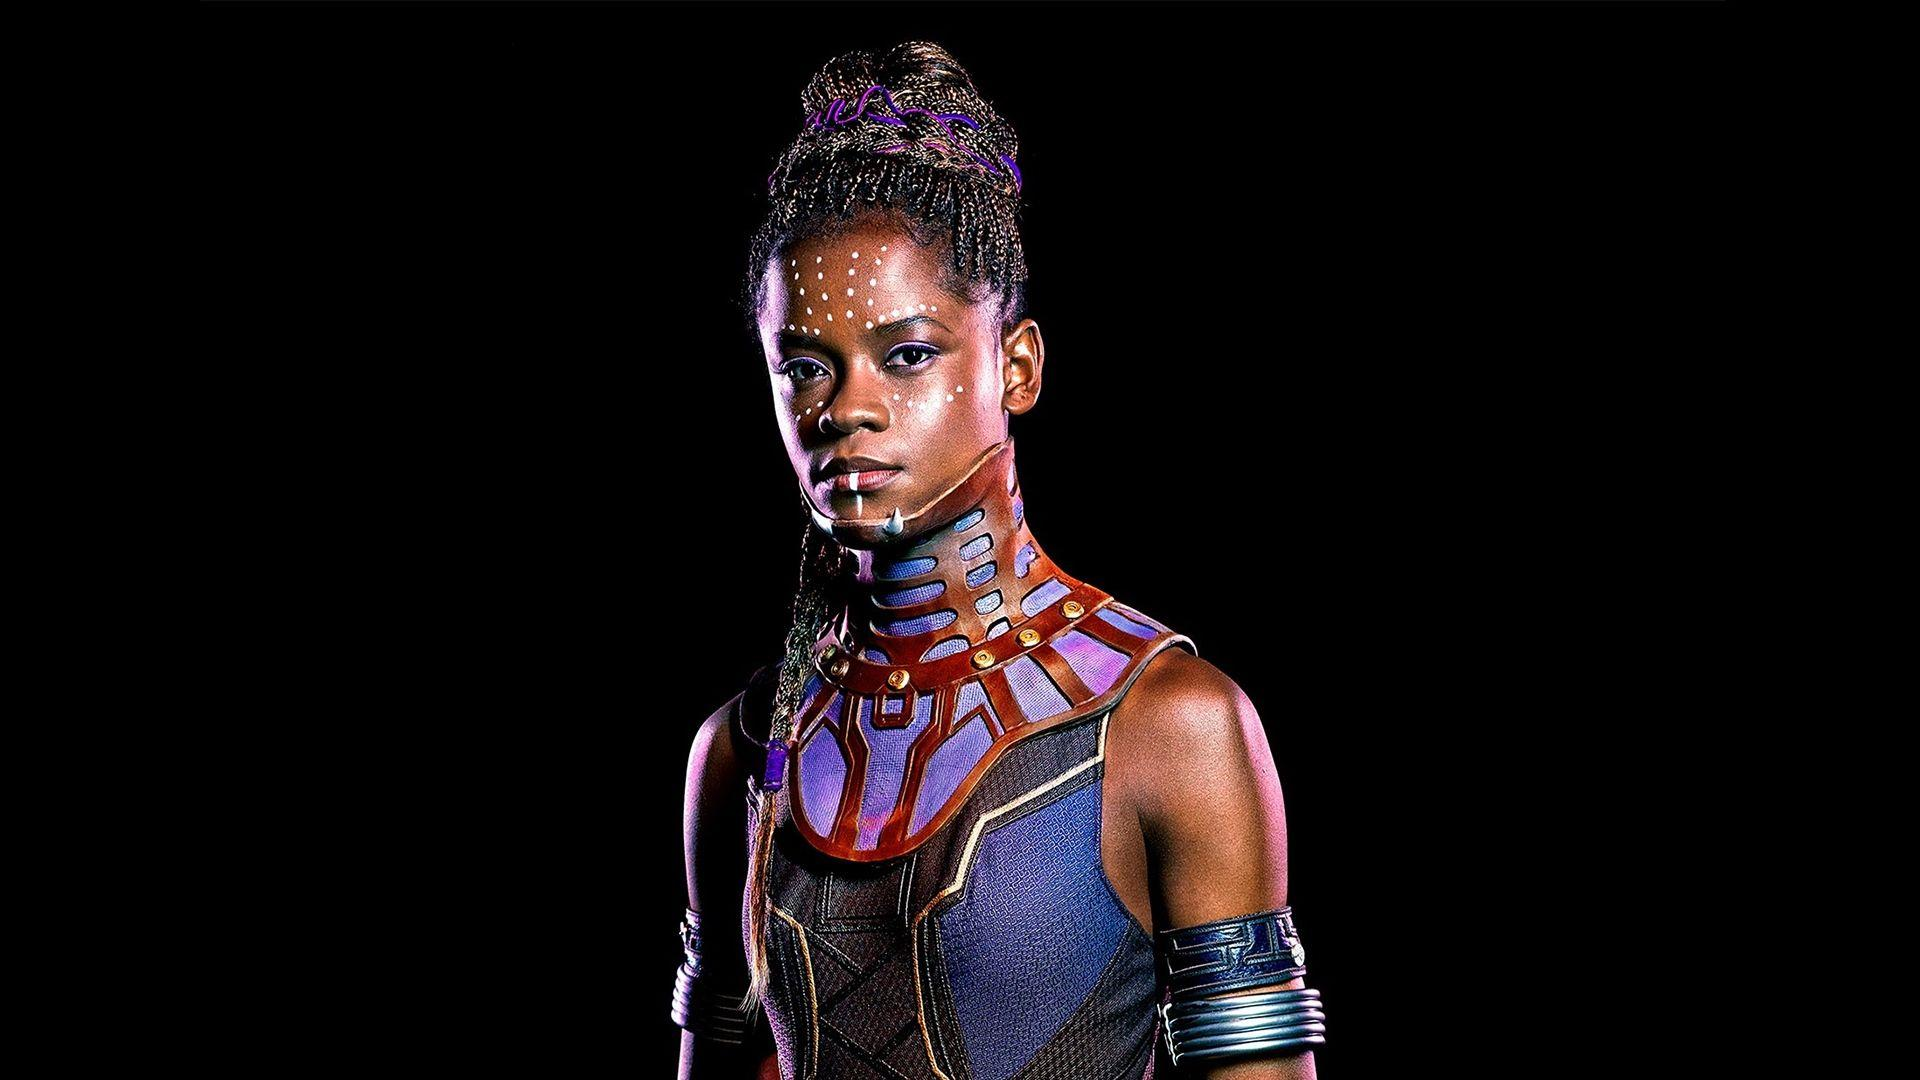 Letitia Wright Wallpapers Wallpaper Cave